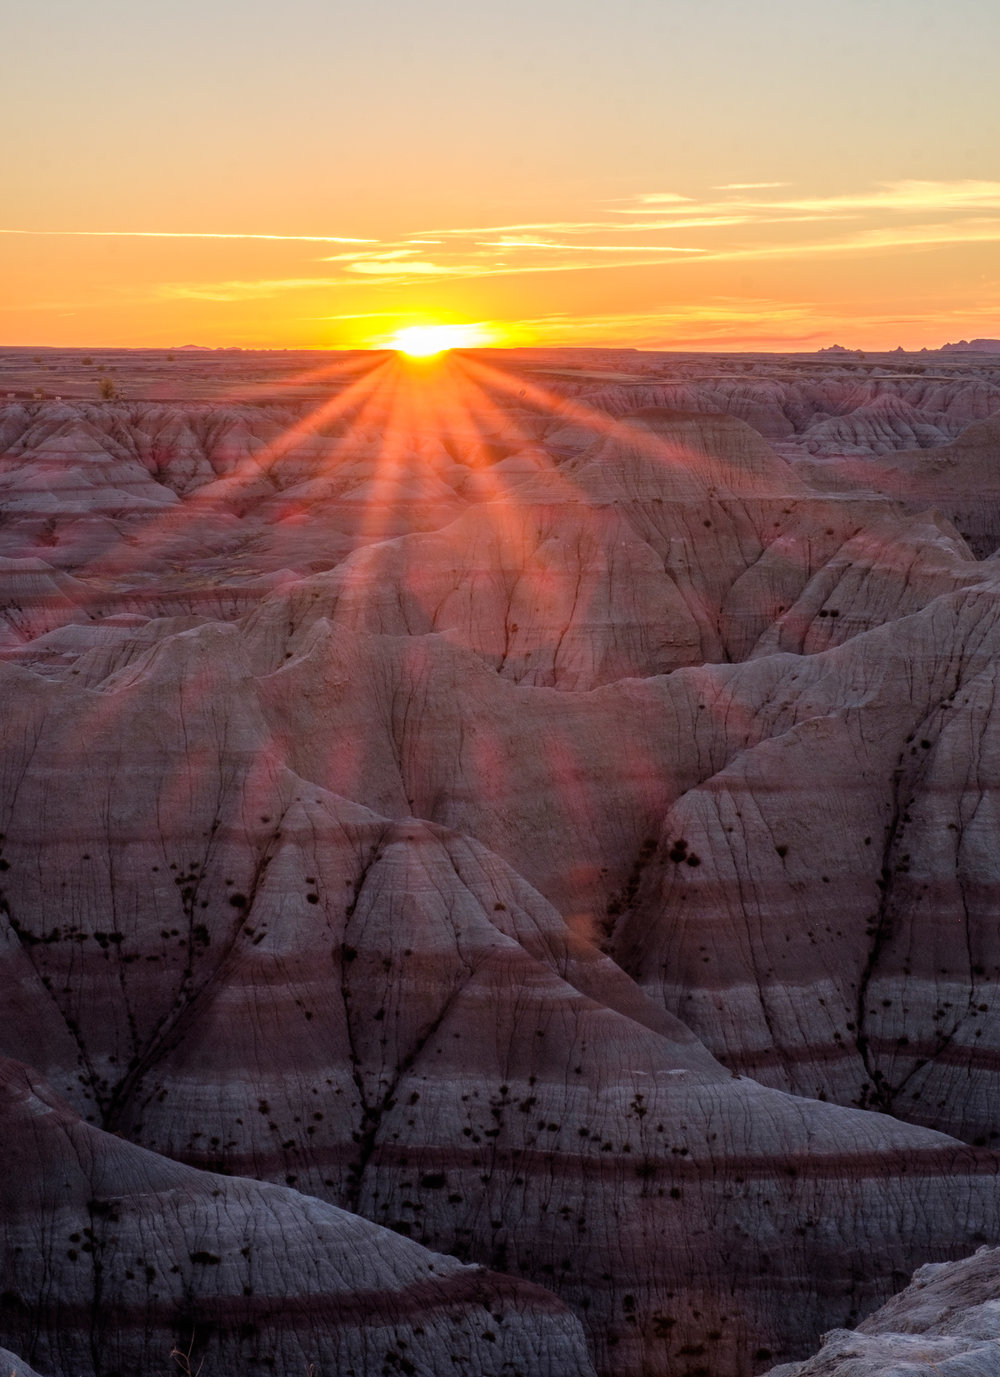 Our first Badlands sunset.